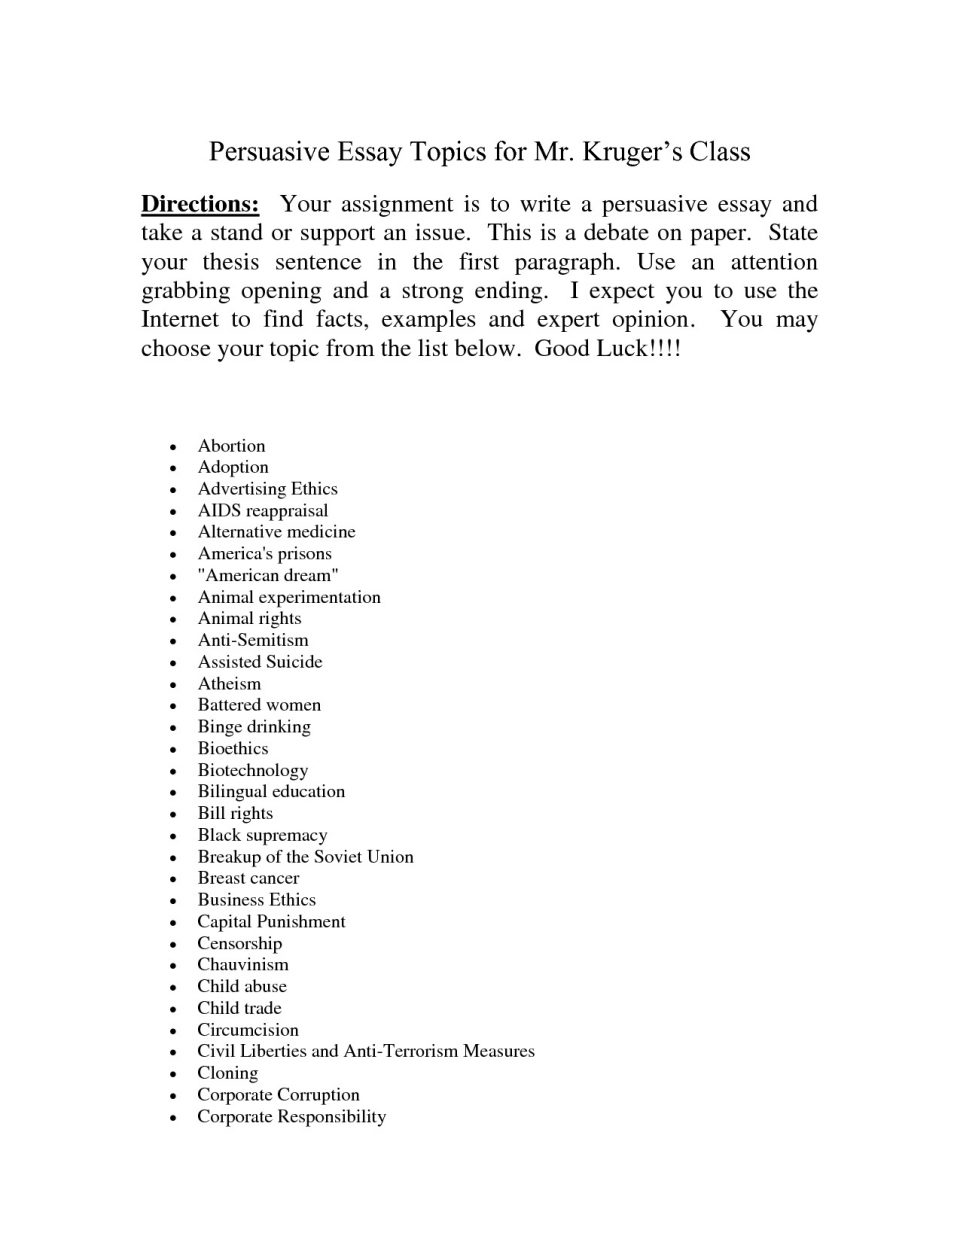 001 Research Paper Topics Topic For Essay Barca Fontanacountryinn Within Good Persuasive Narrative To Write Abo Easy About Personal Descriptive Informative Formidable 2017 Accounting In Computer Science Full